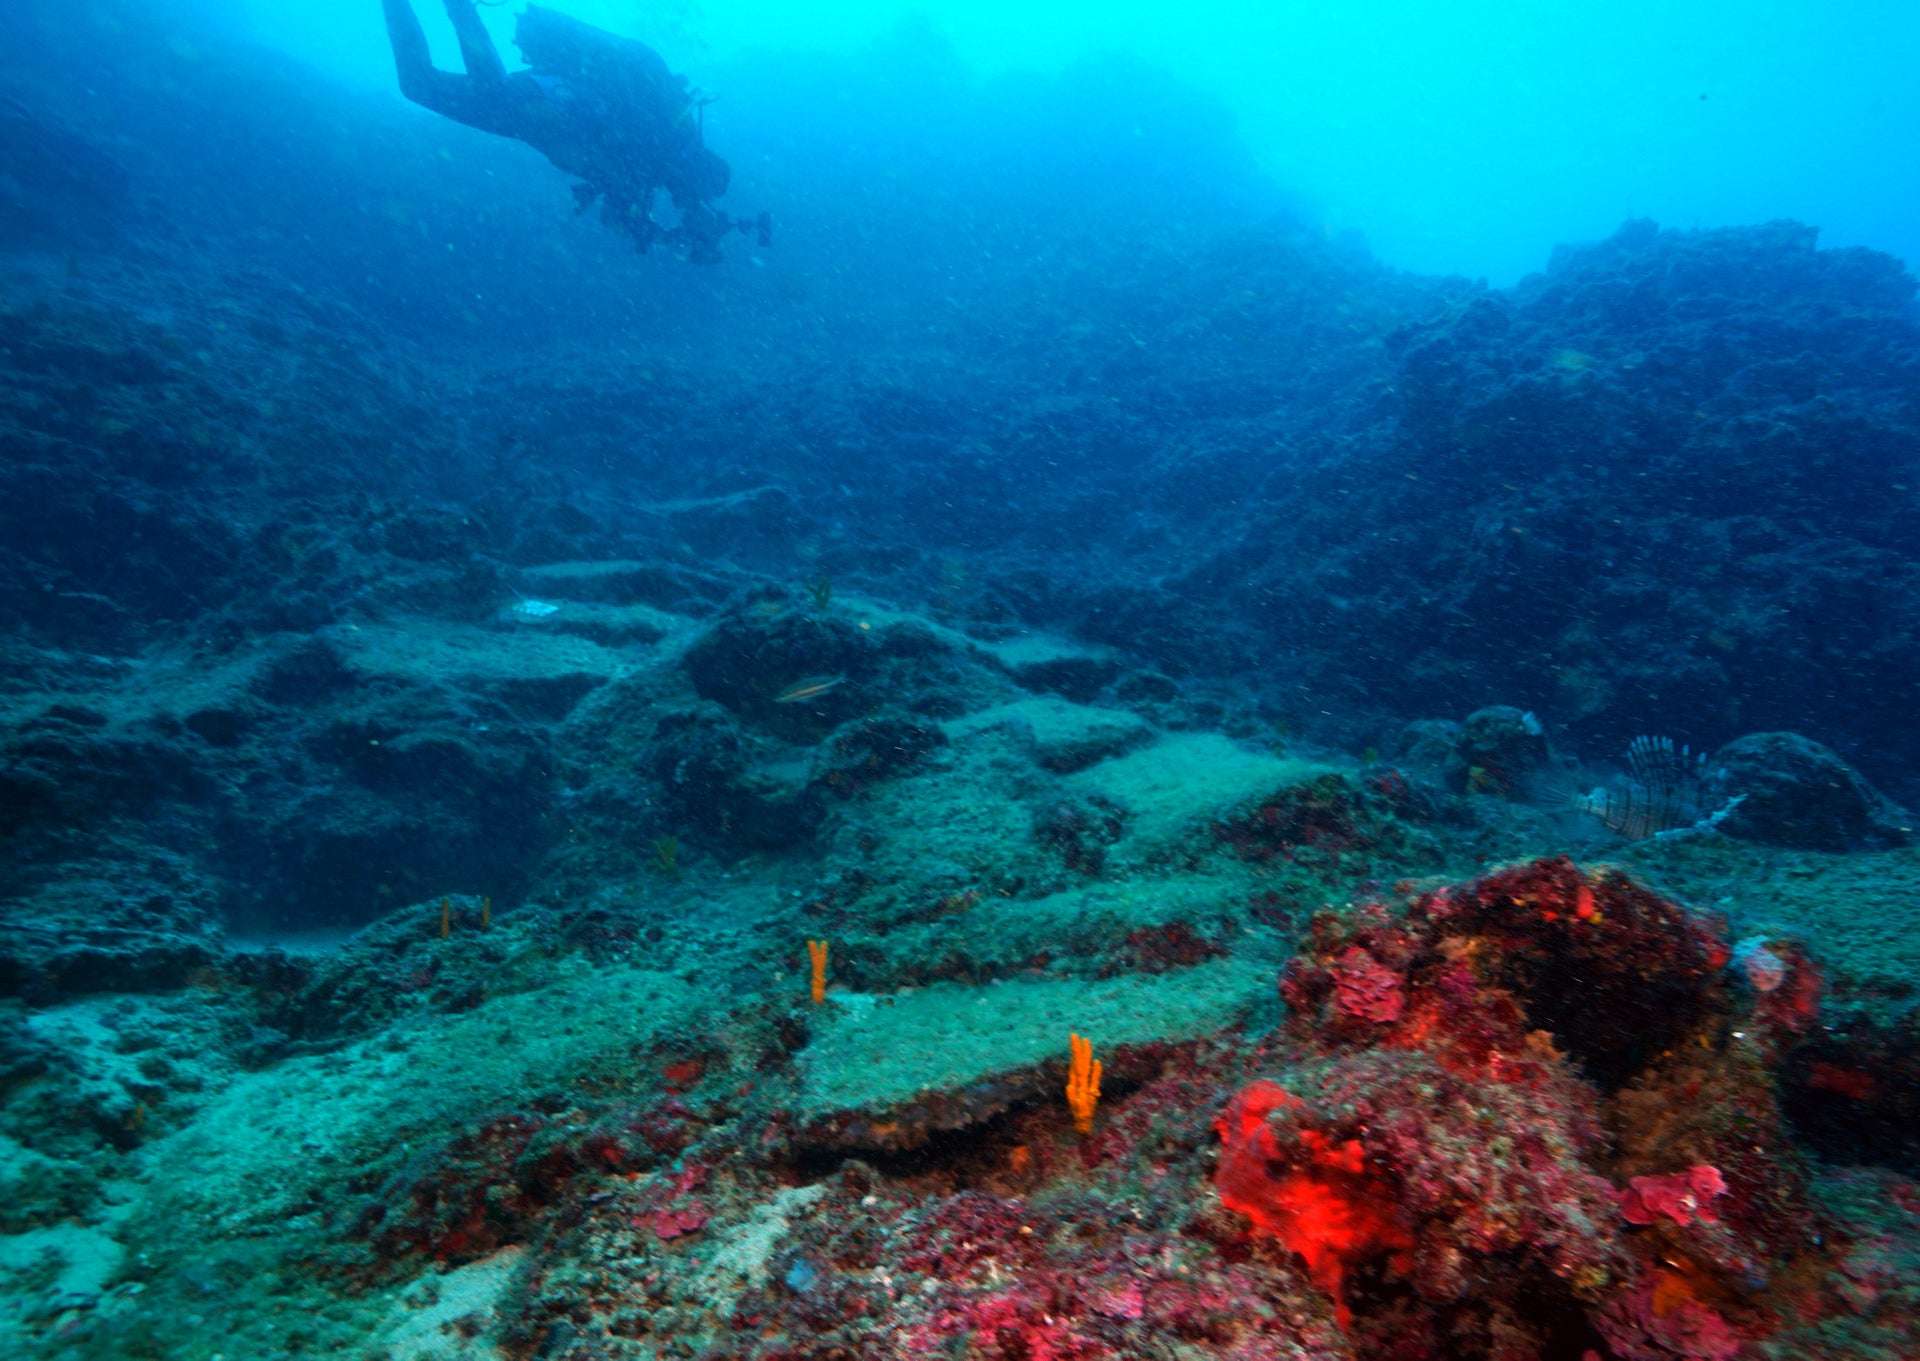 Copper ingots lying on the seabed by Antalya